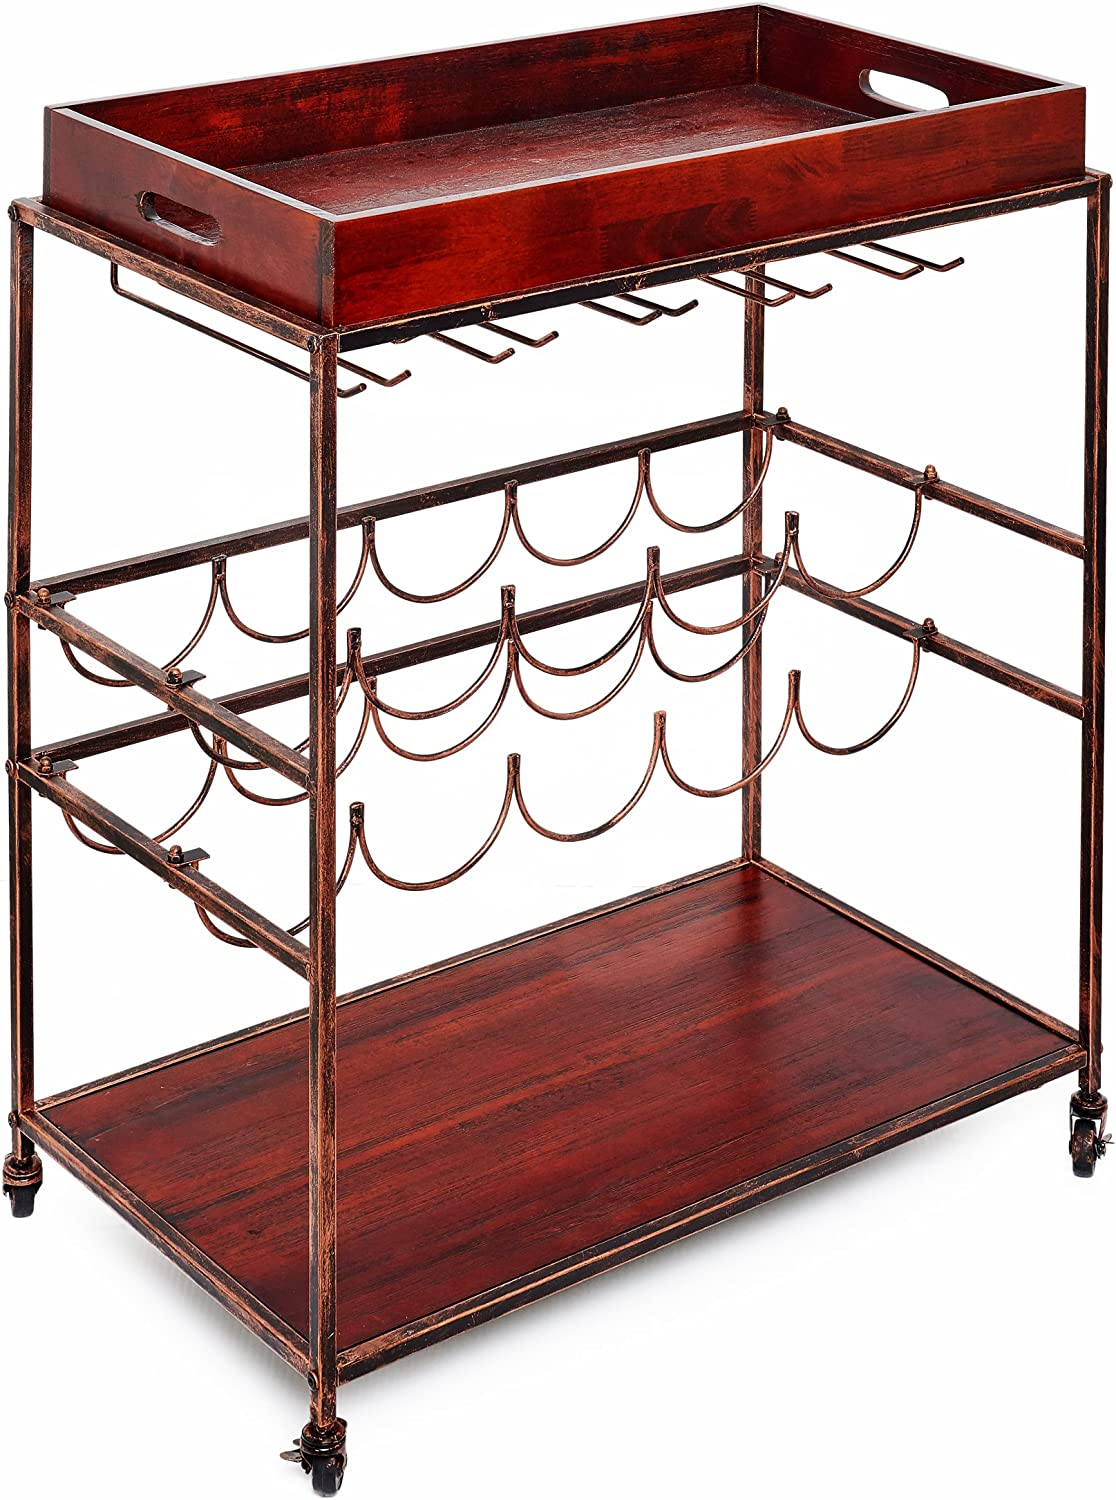 Old Dutch 612BC Avalon  Wine Serving Cart 28  x 16  x 32  Antique Copper pinkwood Stained Rubberwood